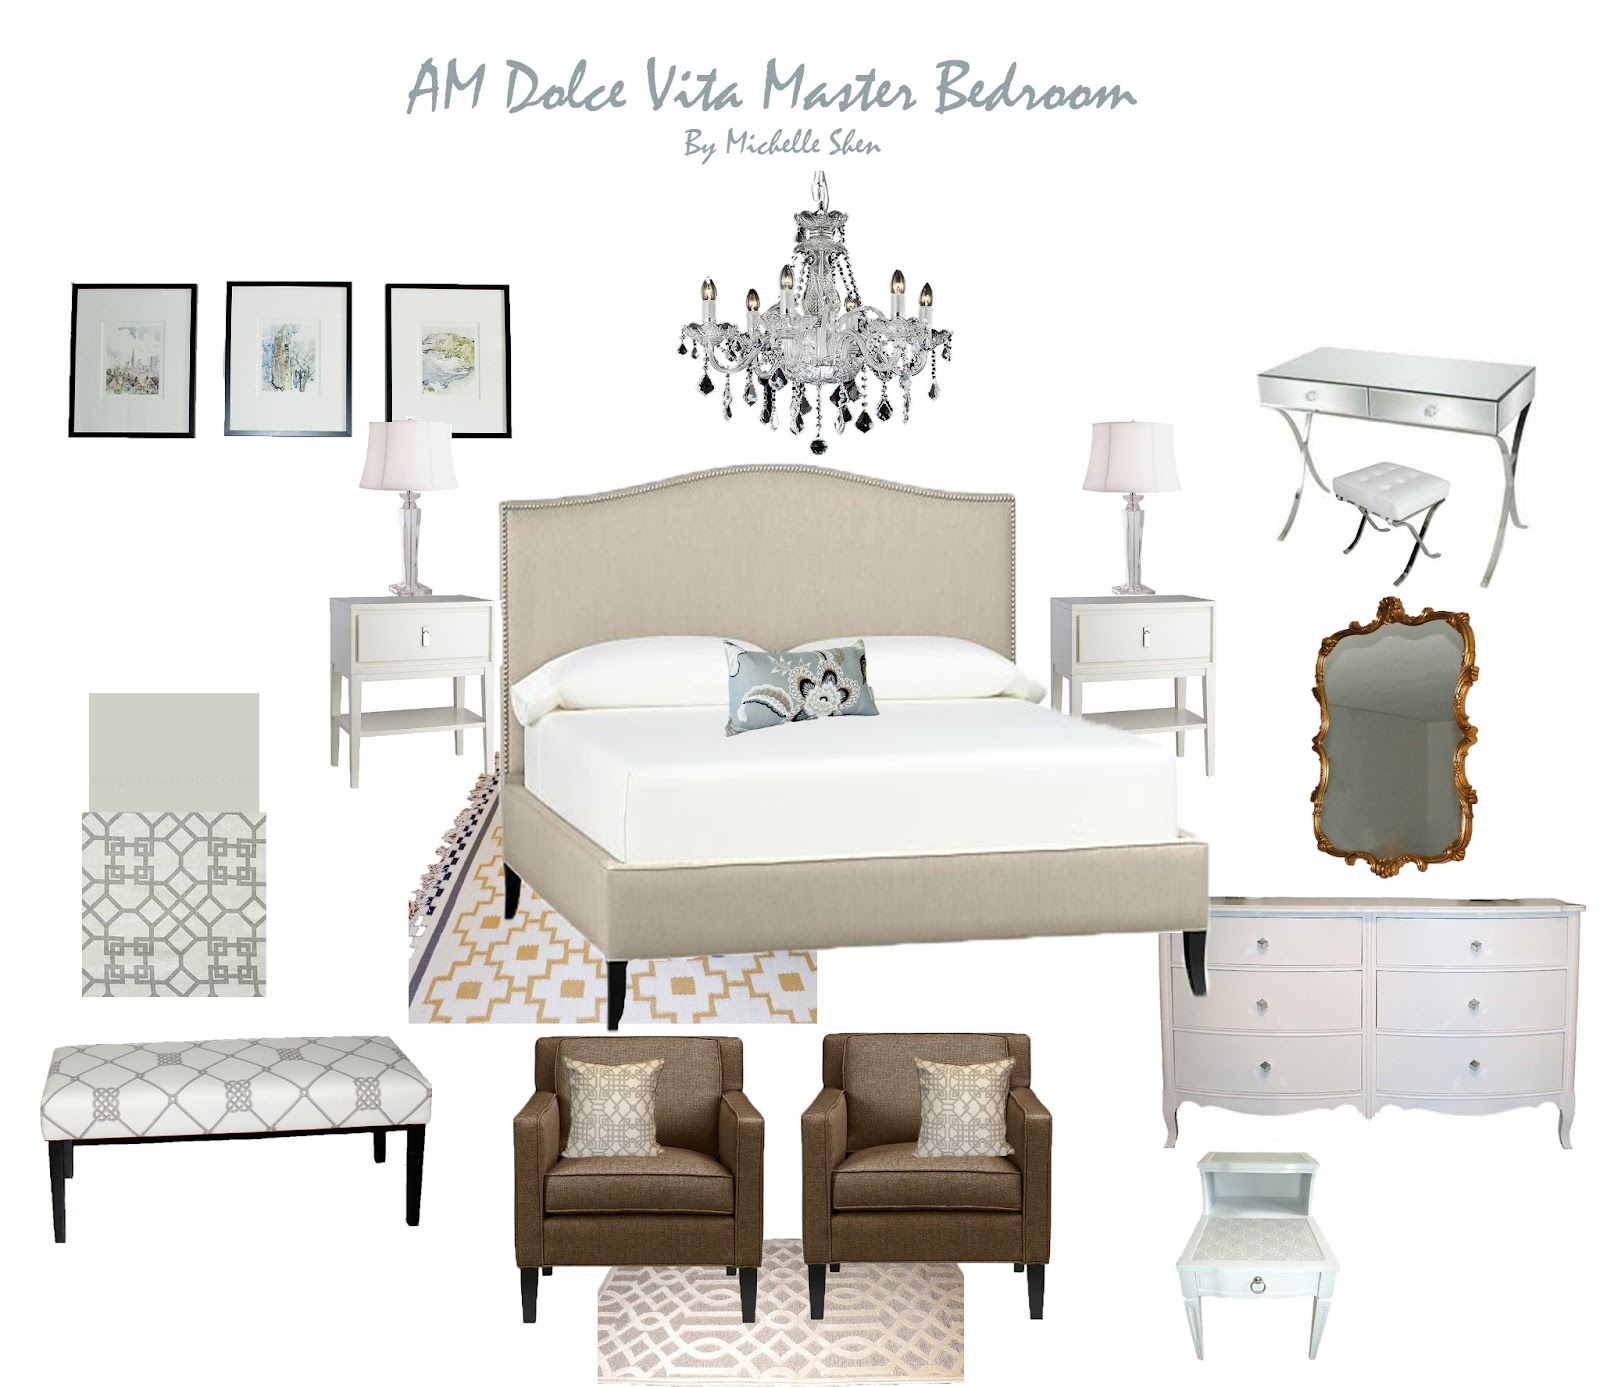 AM Dolce Vita: Design Boards